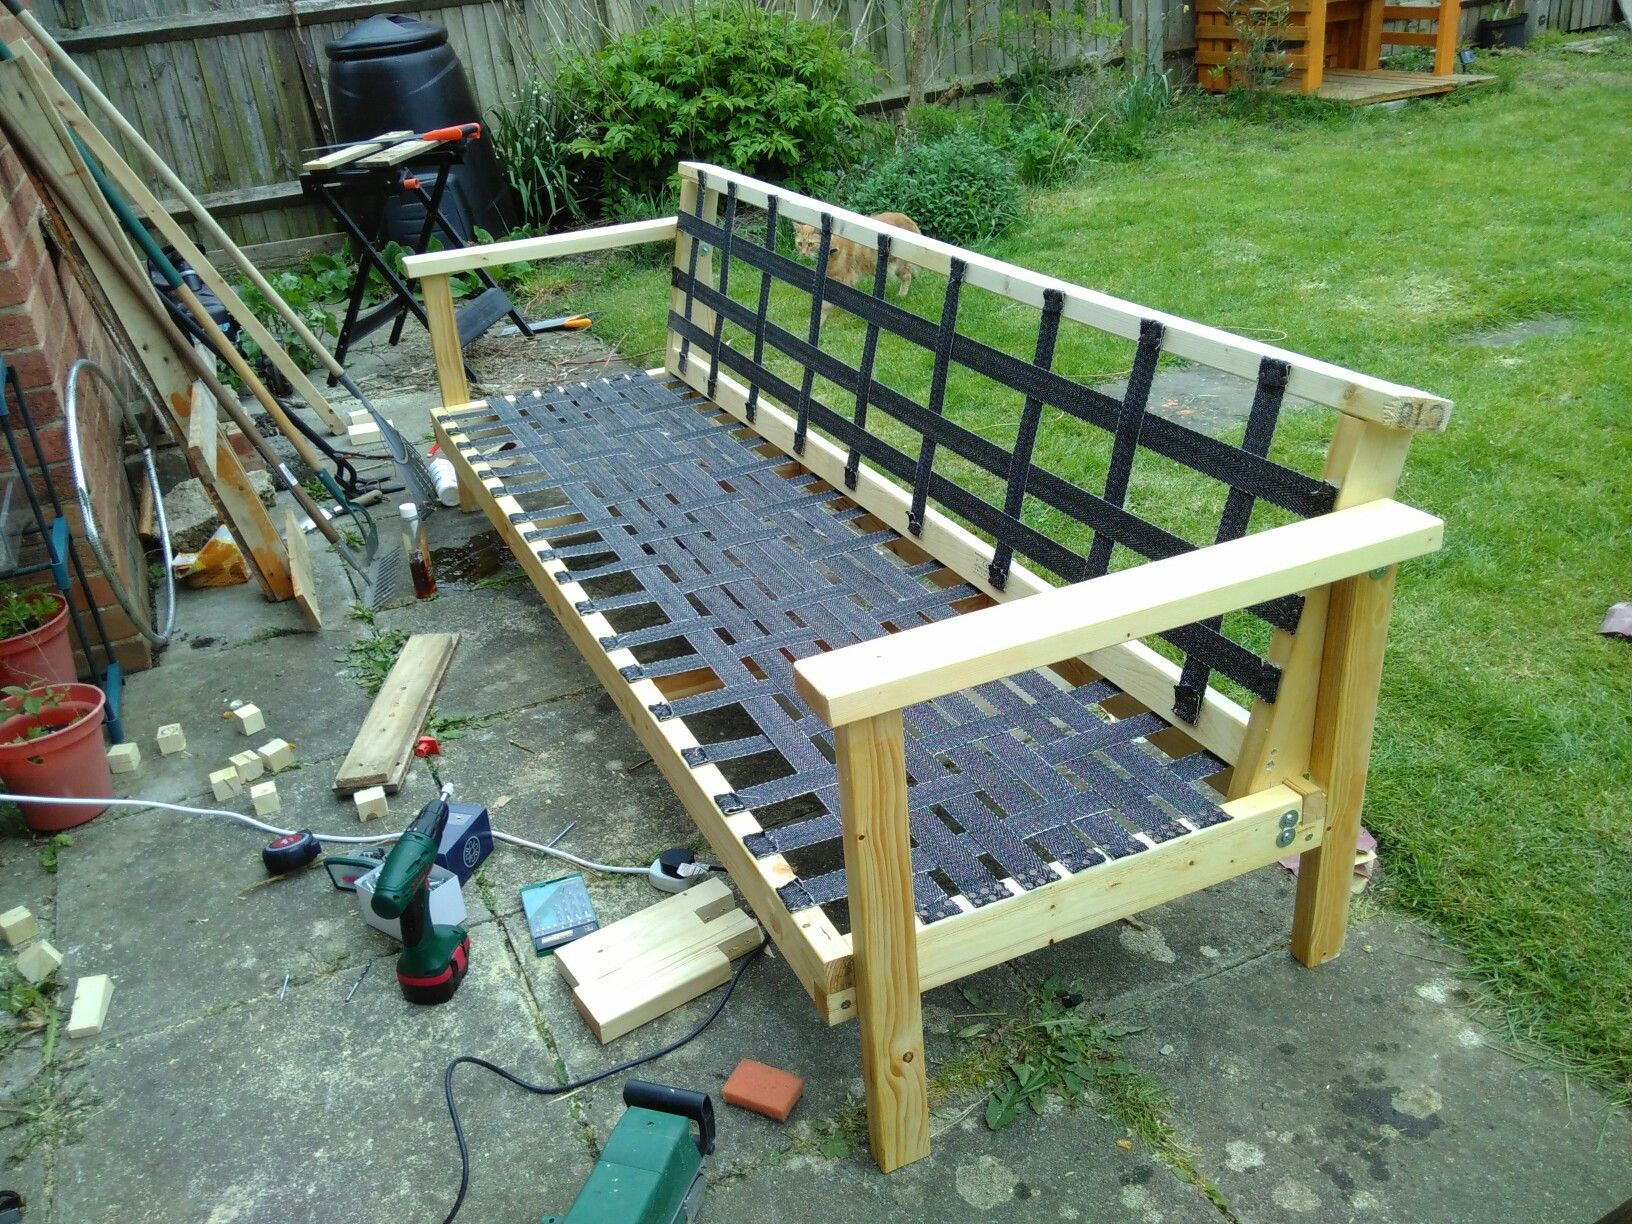 Building A Sofa Using Cheap 2x4 And Webbing. Build Cost So Far £50.